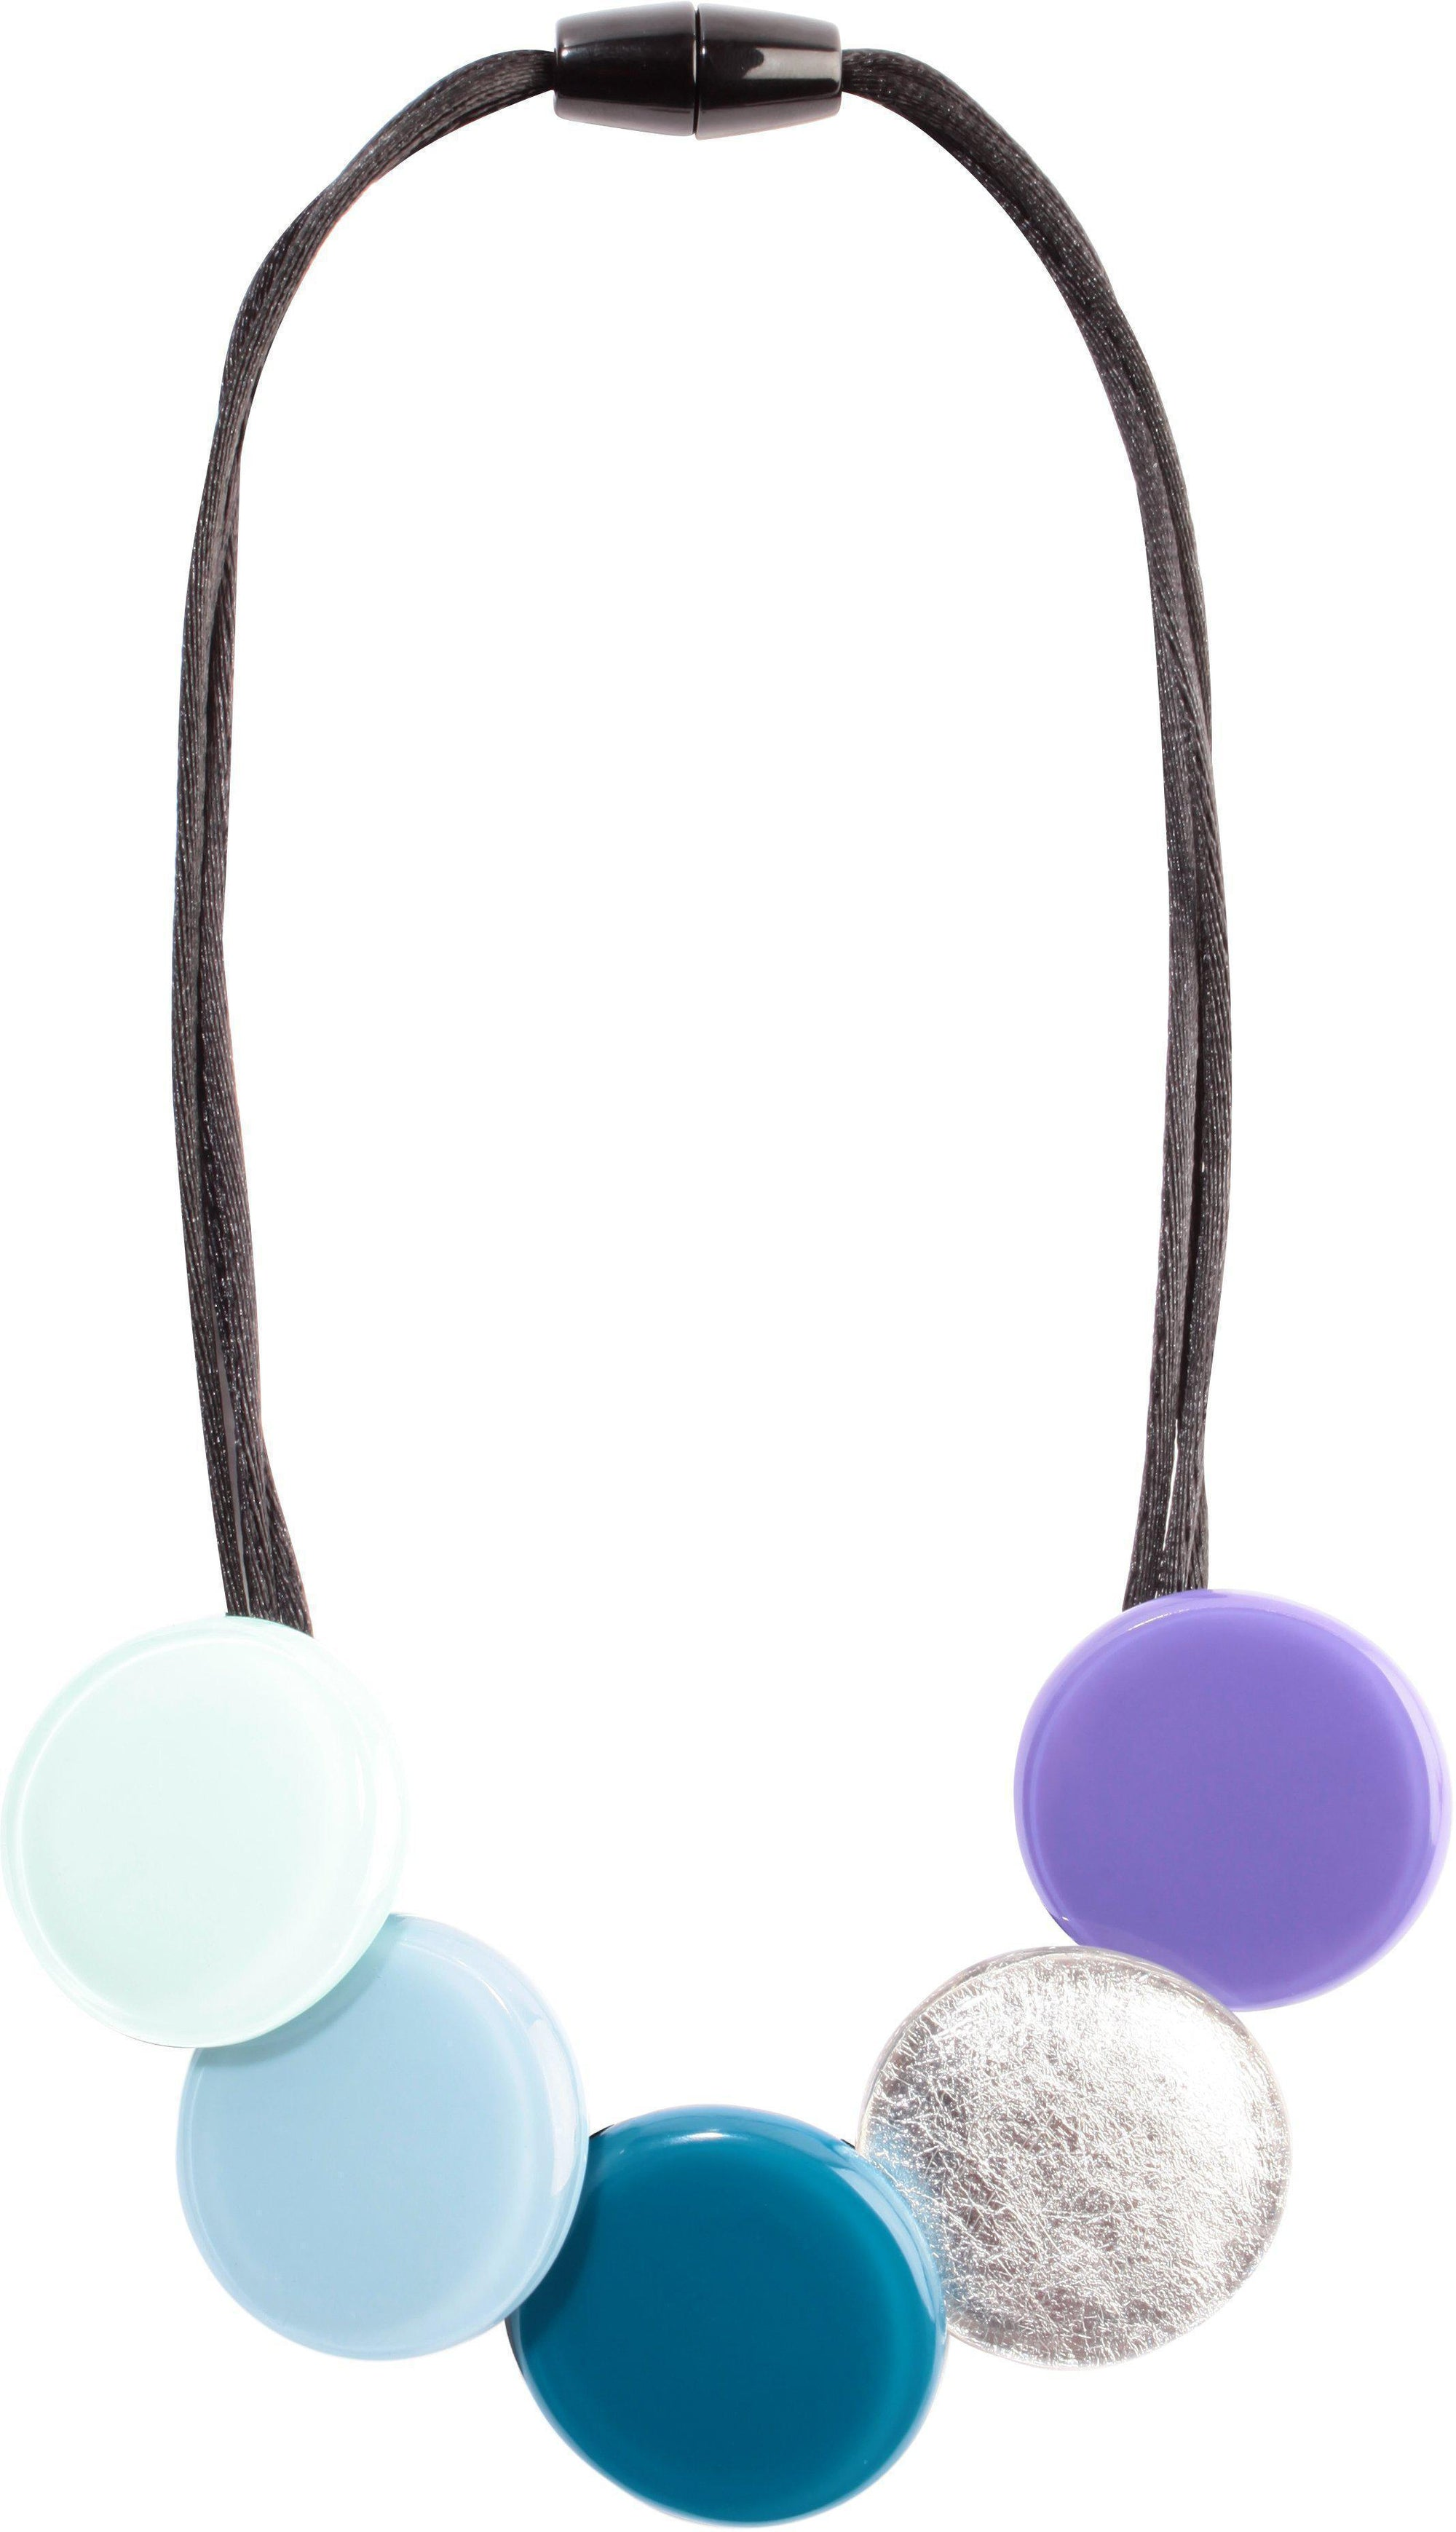 Zsiska A Round Teal, Aqua and Silver Short Necklace